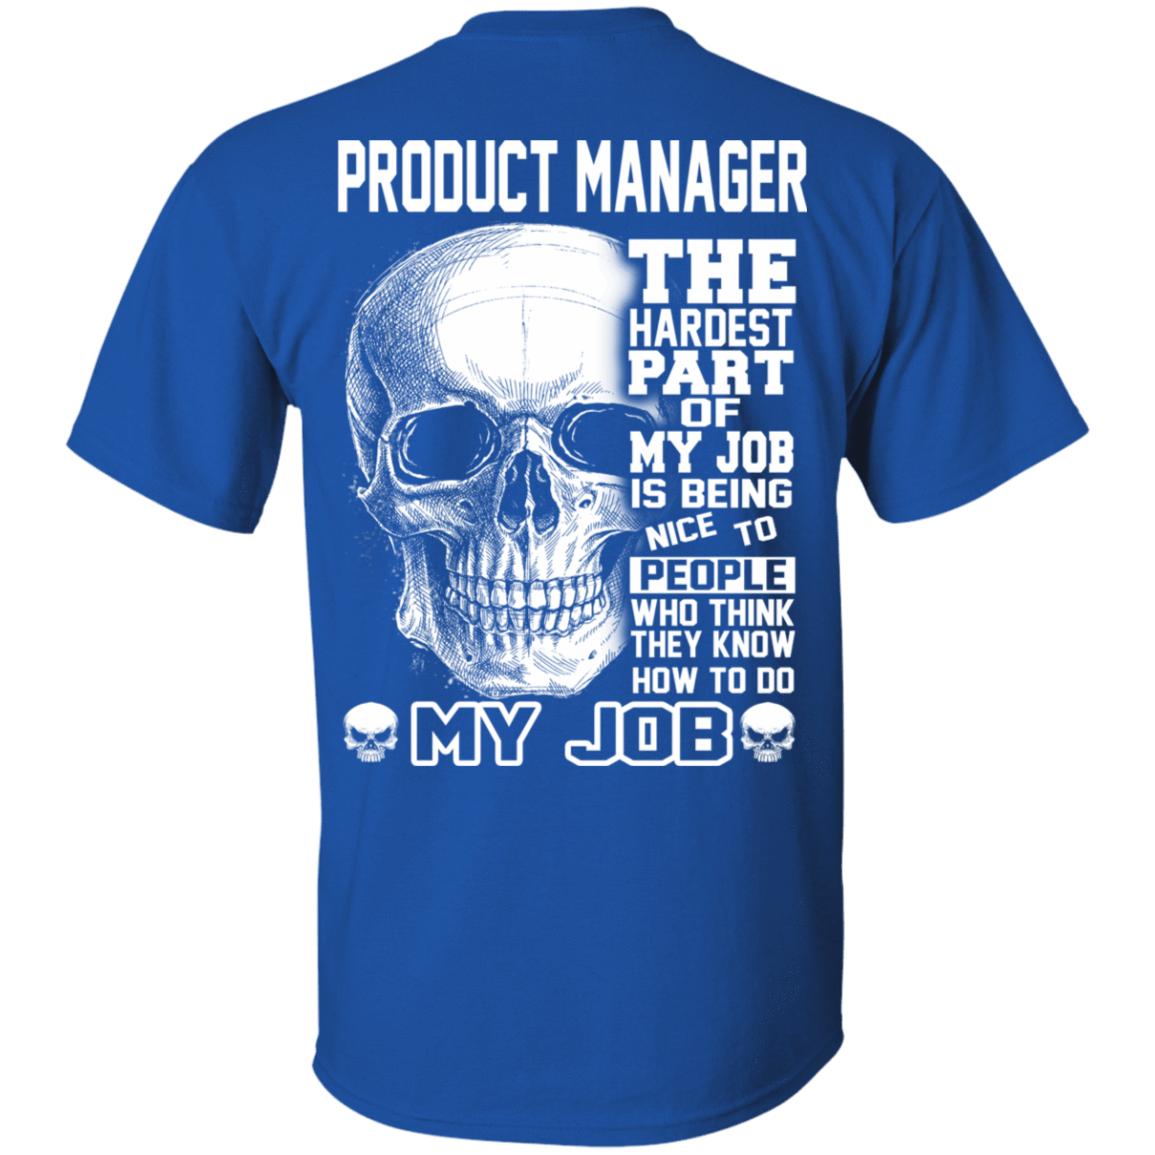 Product Manager The Hardest Part Of My Job 22-110-71881740-249 - Tee Ript